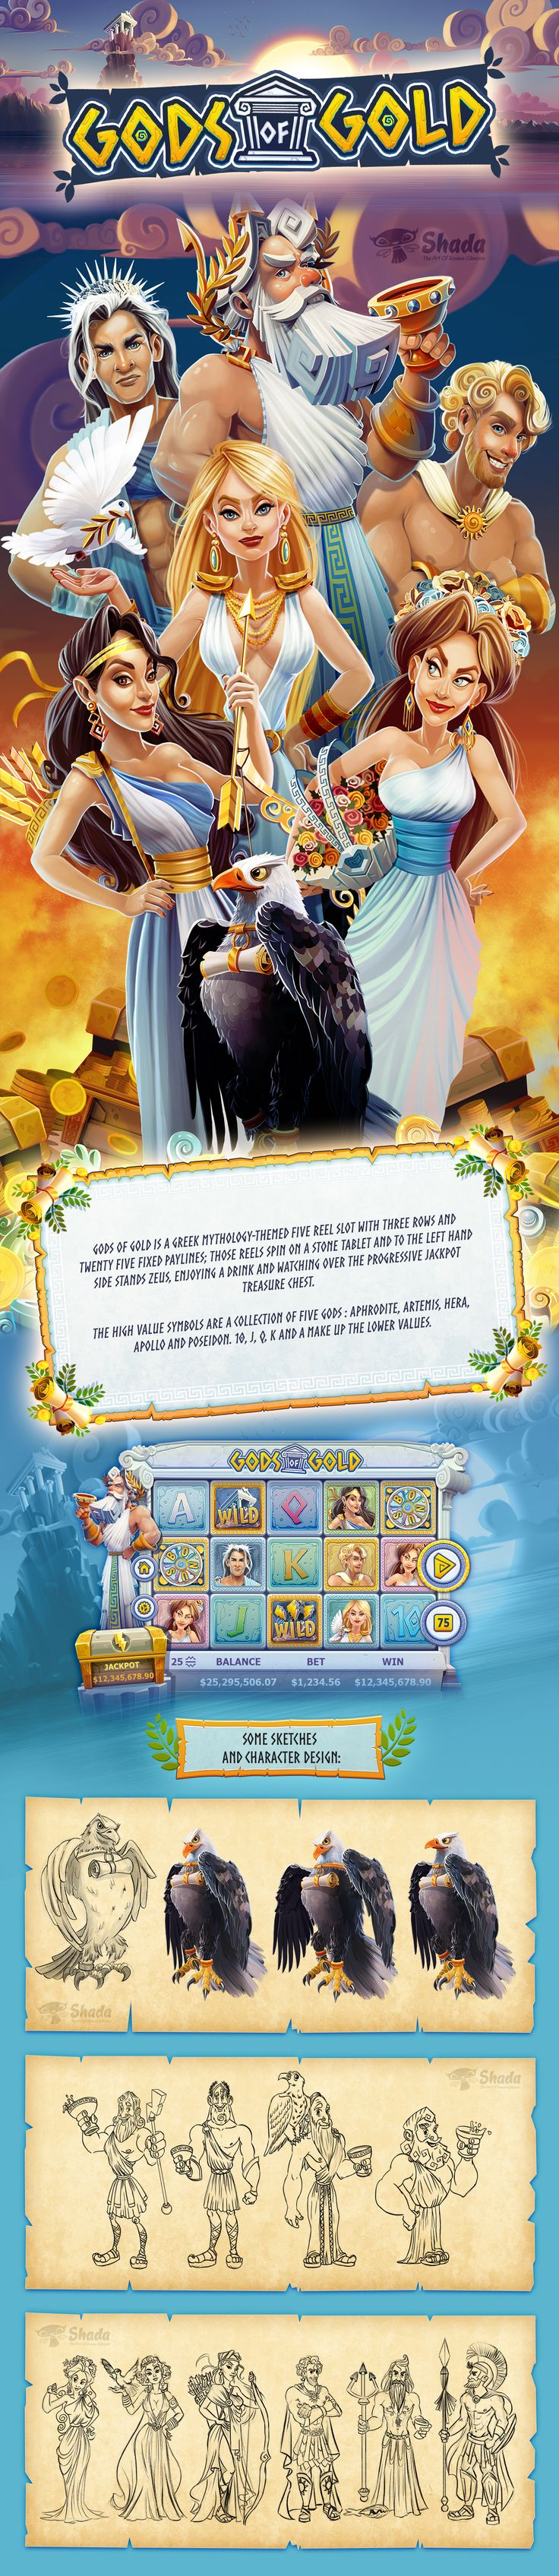 GODS OF GOLD videoslots game on Behance